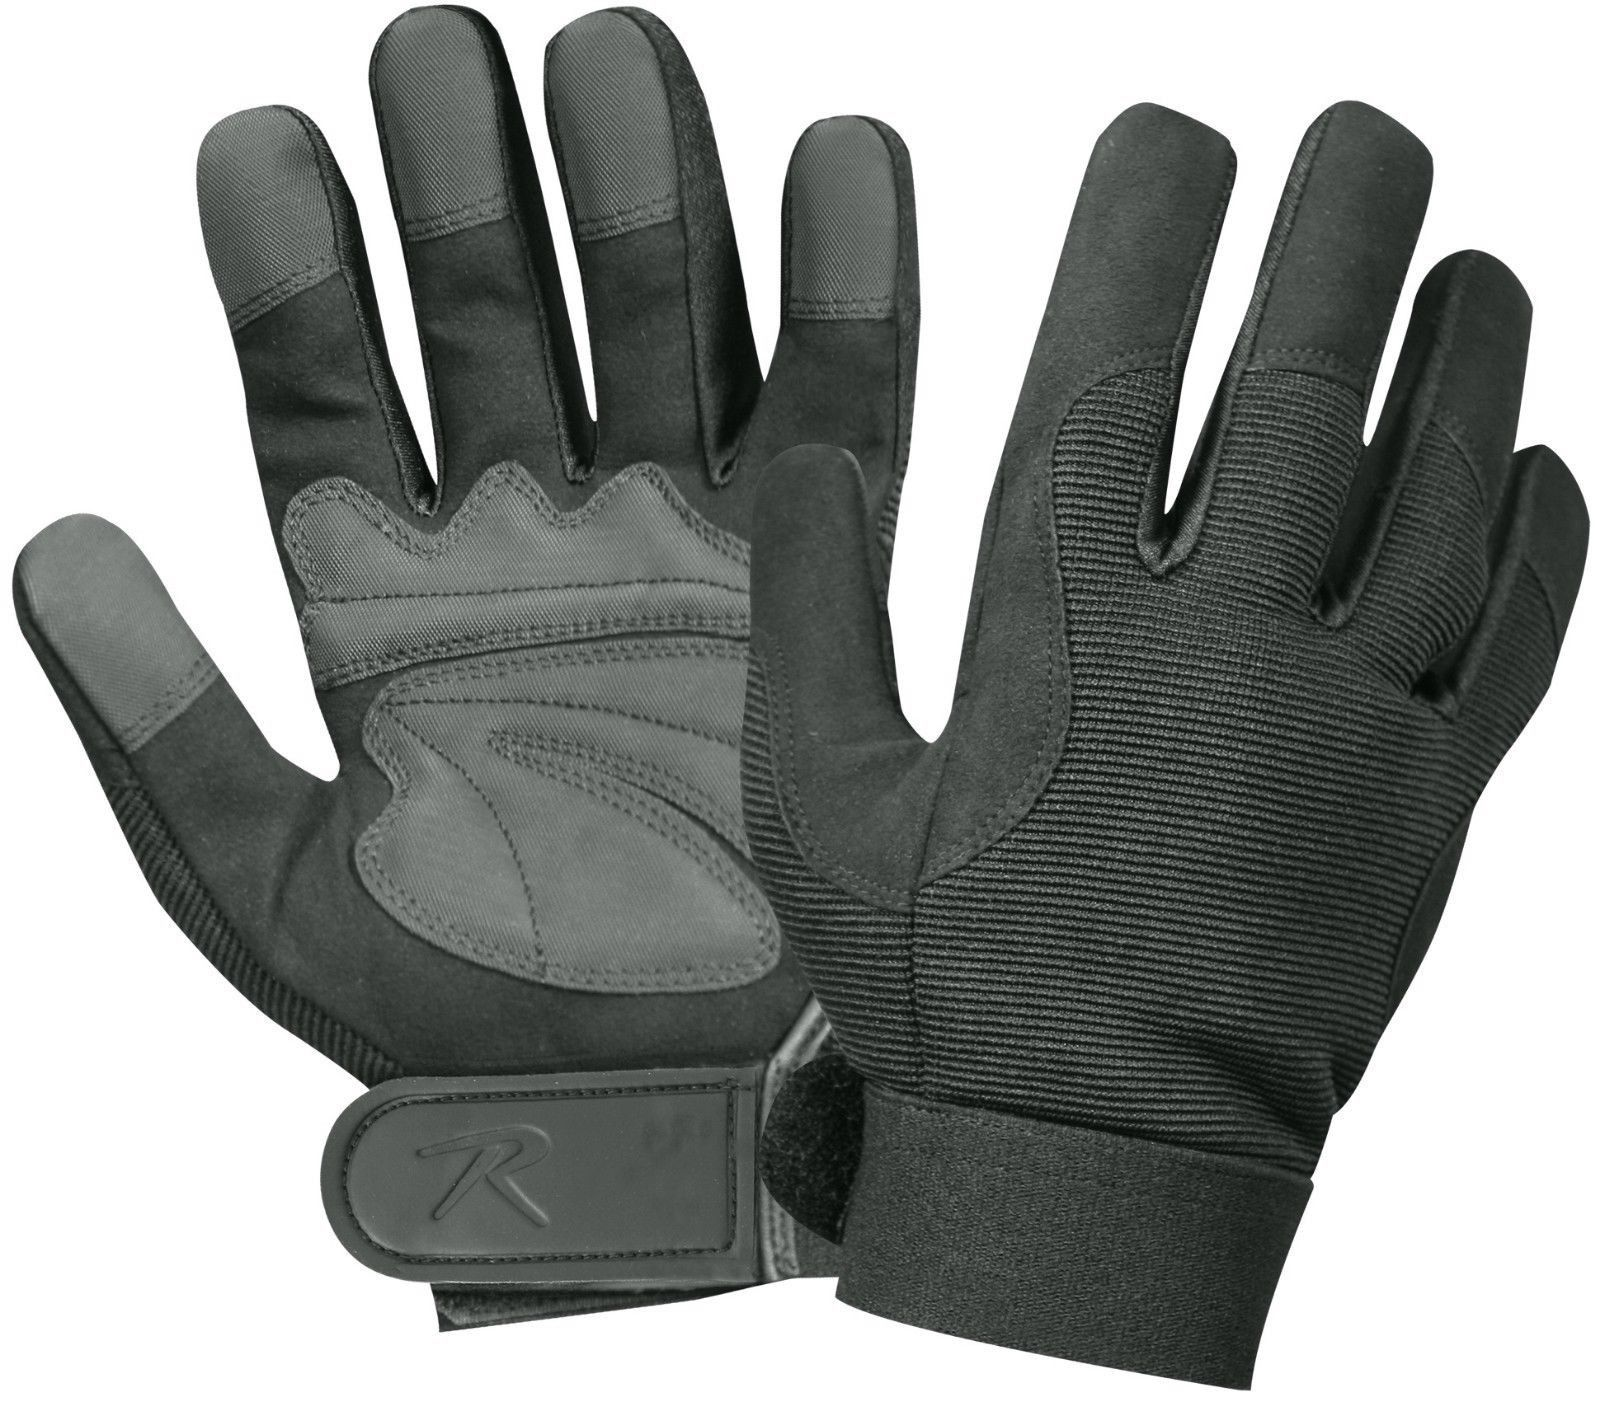 military mechanics glove black grey bikers sports everyday